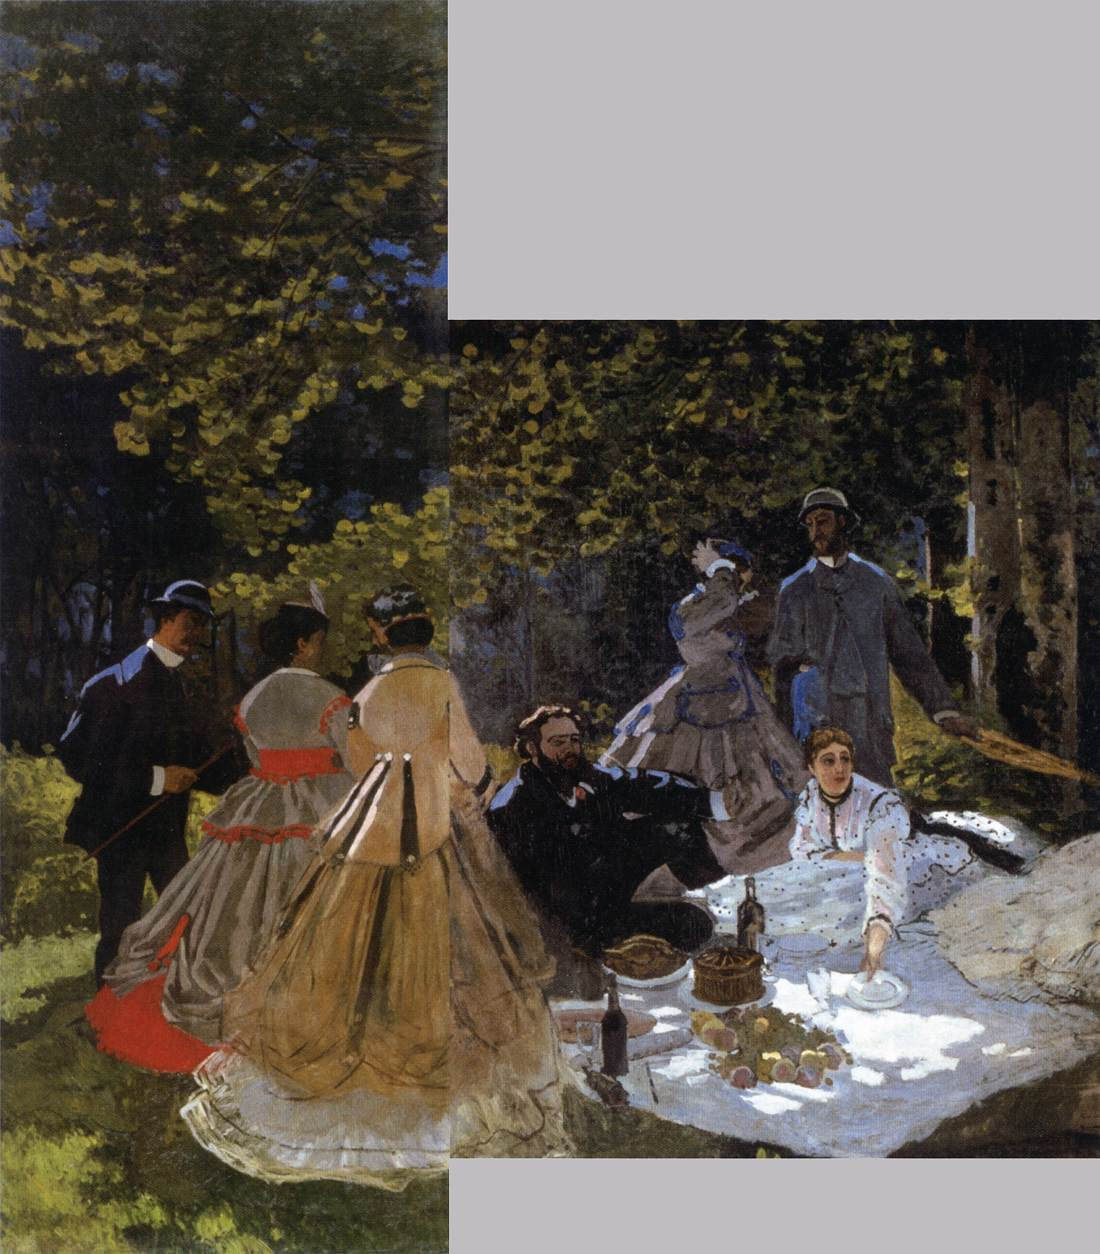 claude-monet-le-dejeuner-sur-l-herbe-the-picnic-two-parts